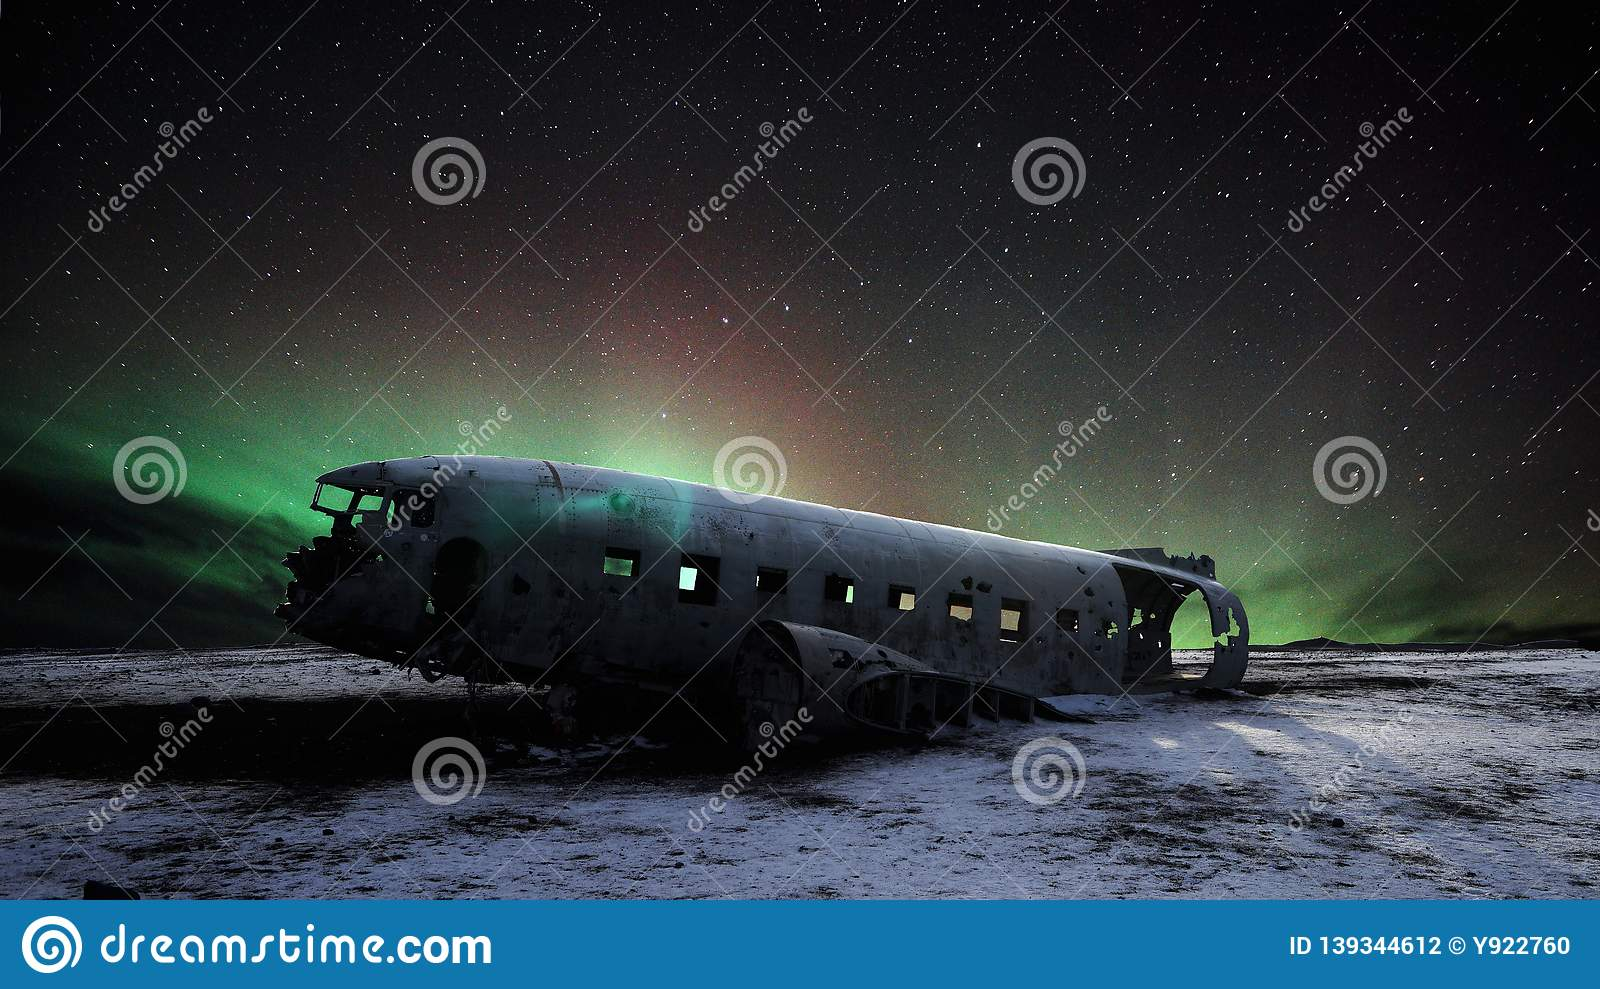 Abandoned DC plane in Iceland with aurora northern light and star background